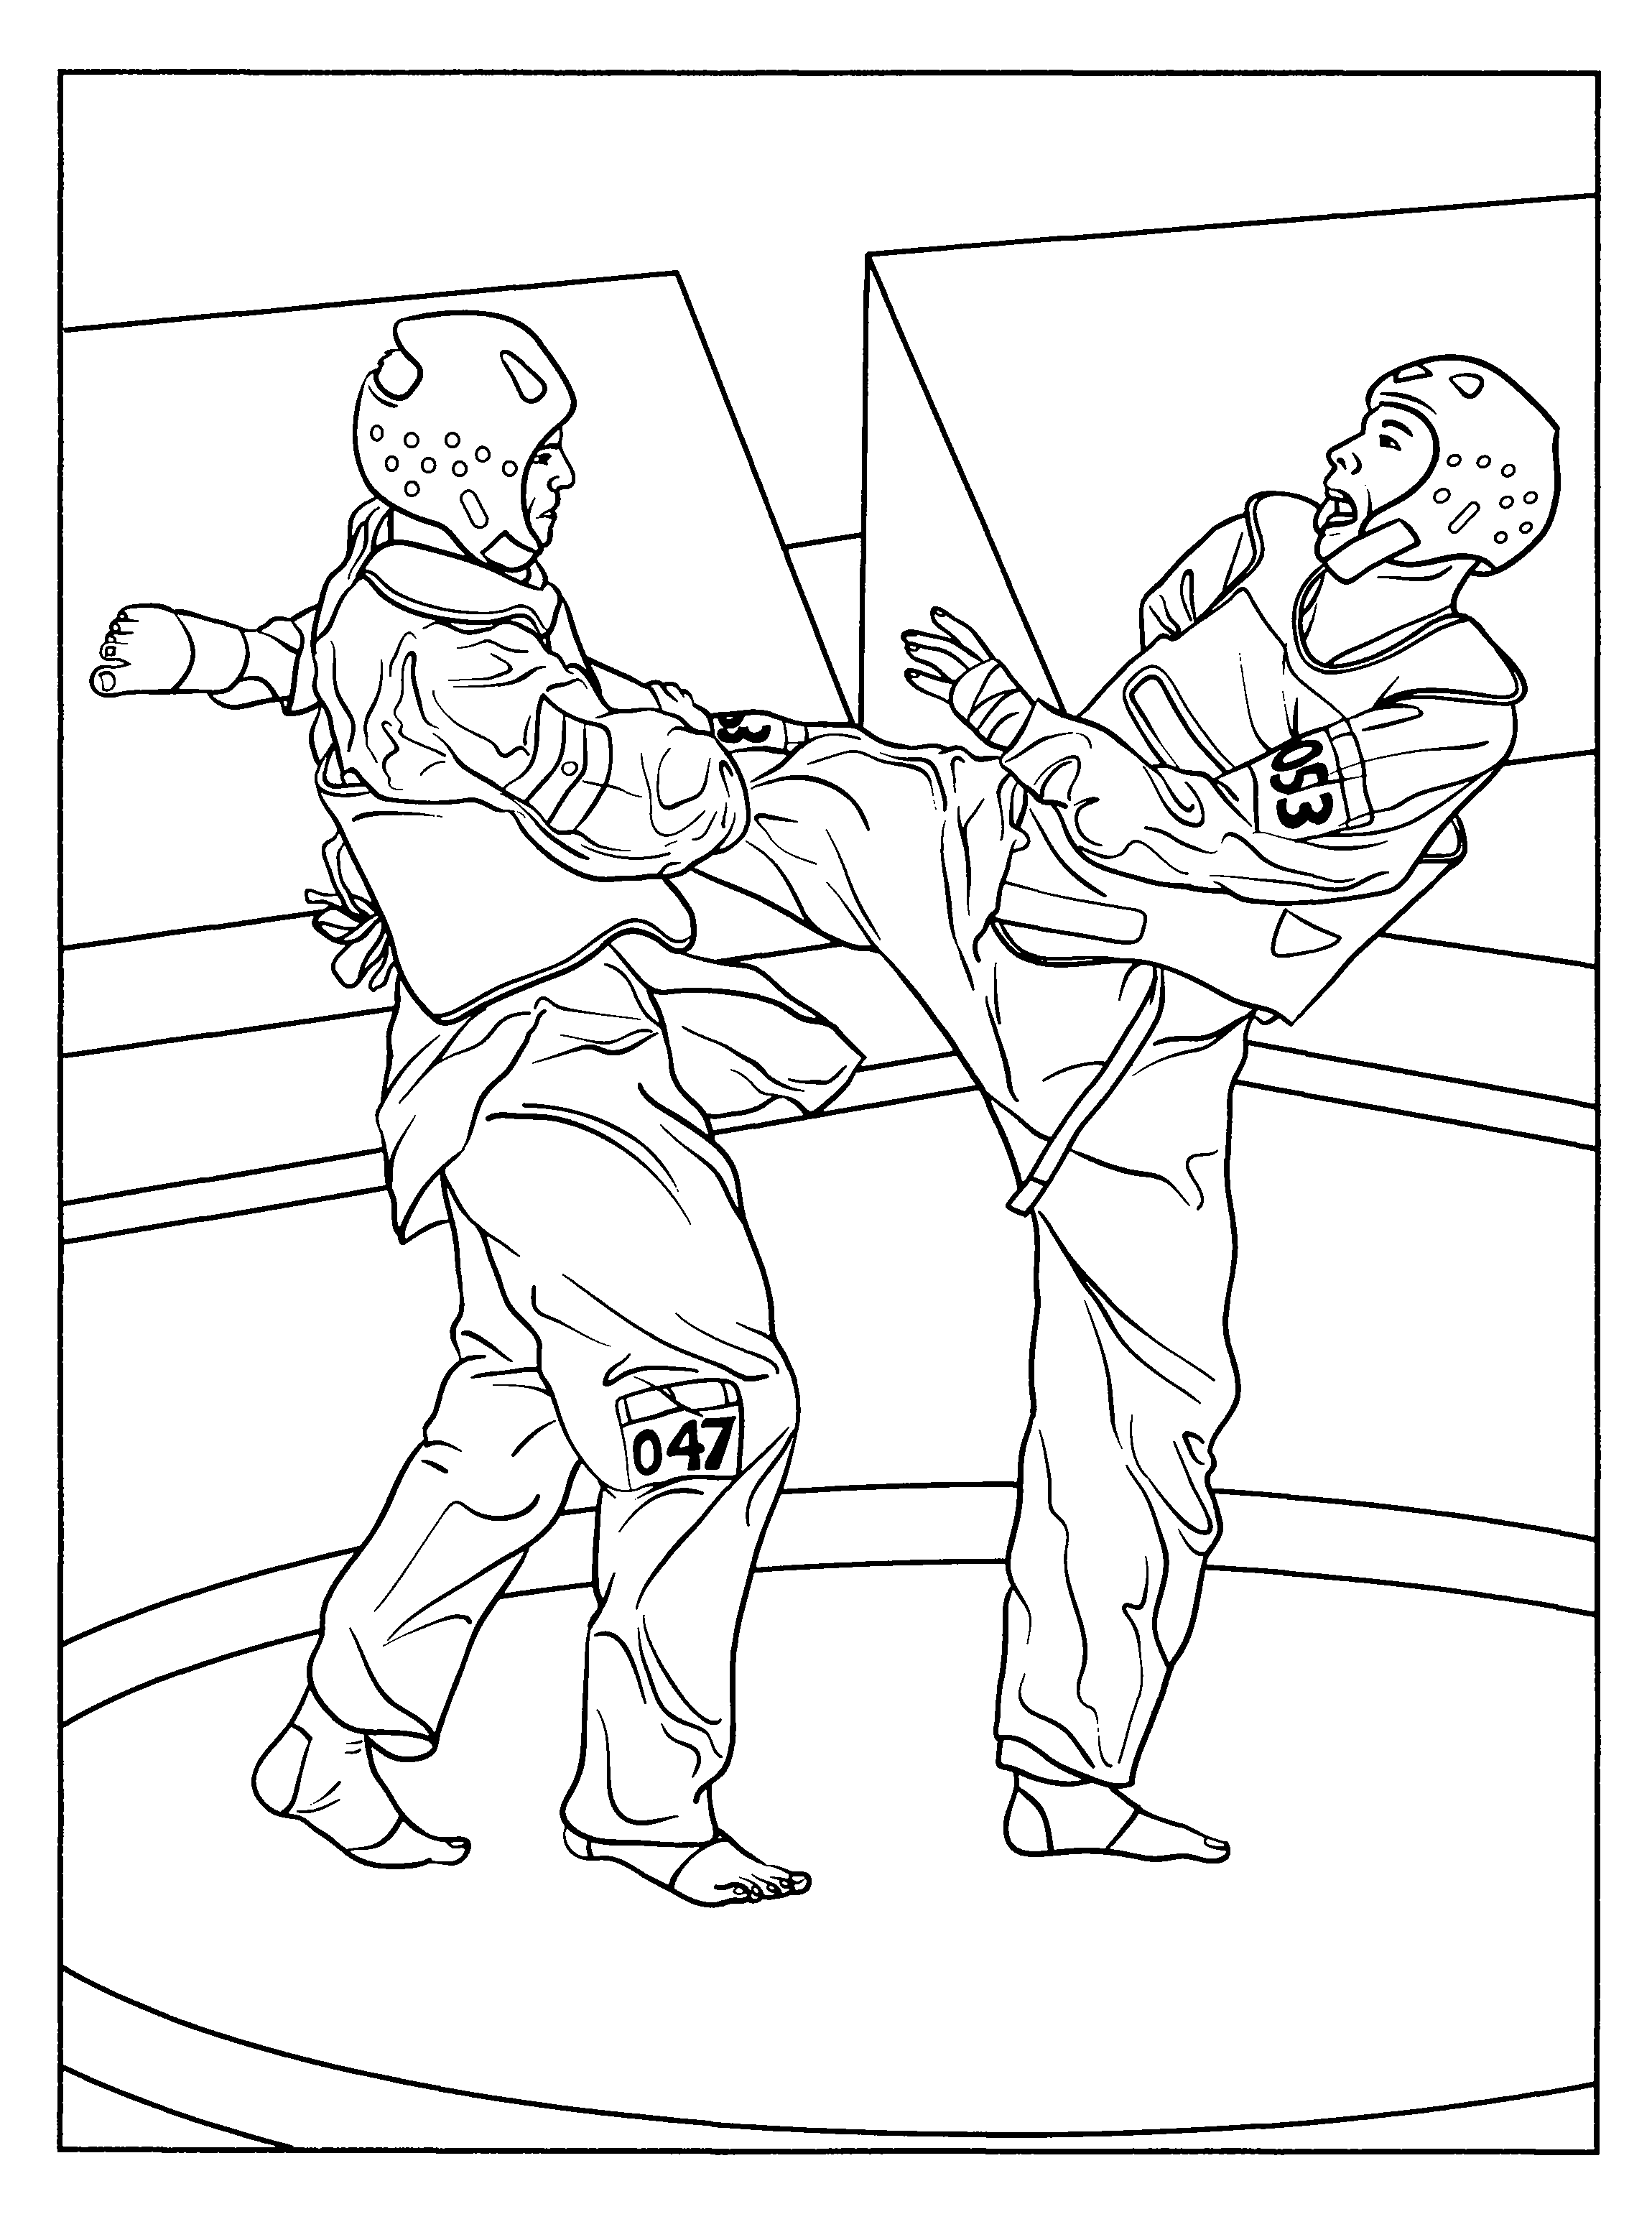 karate coloring pages for kids coloring pages pinterest karate kick